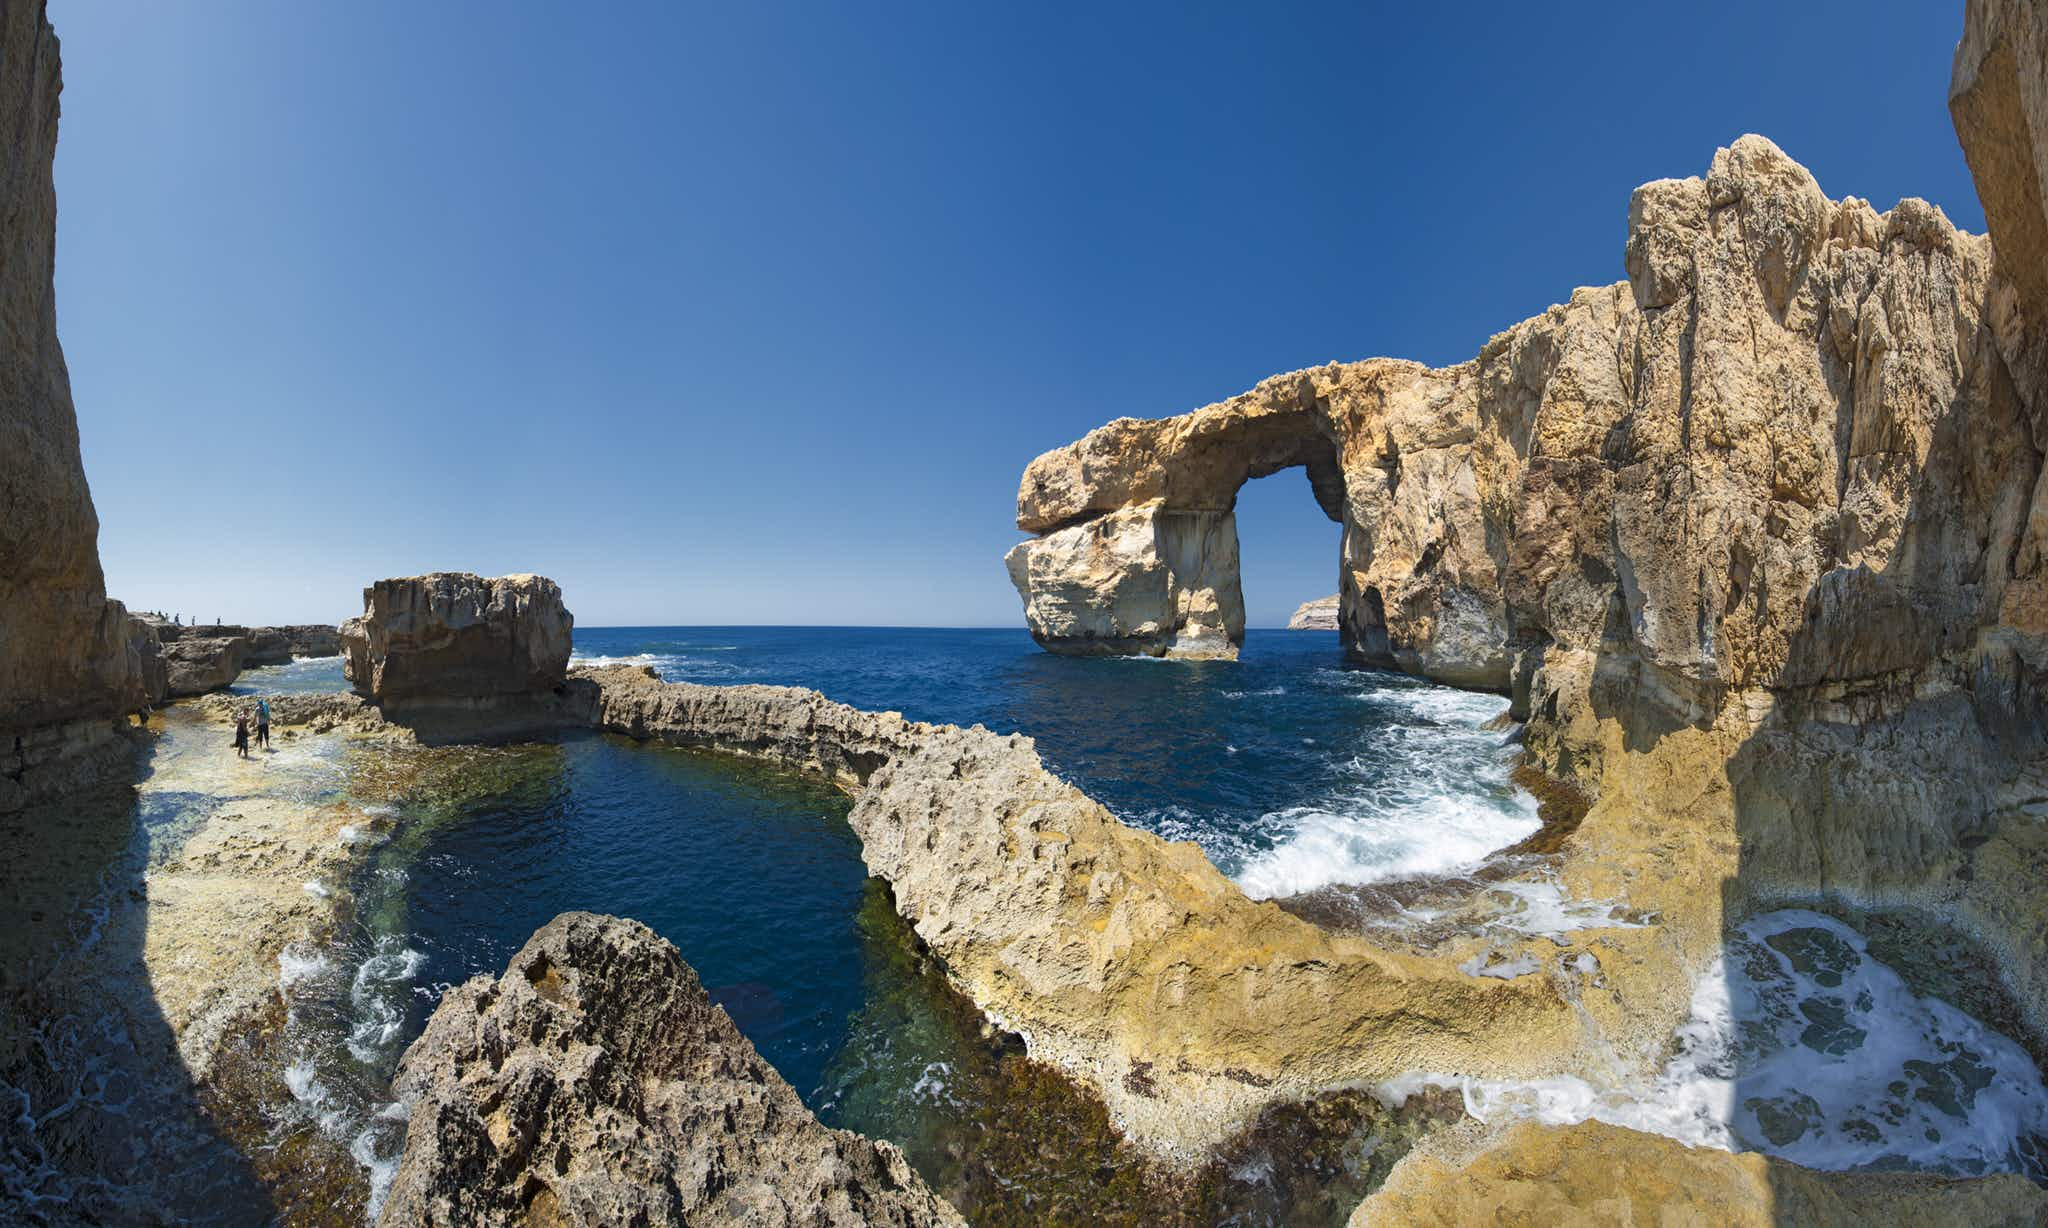 Malta's collapsed Azure Window rock arch has found a new purpose as a top dive site